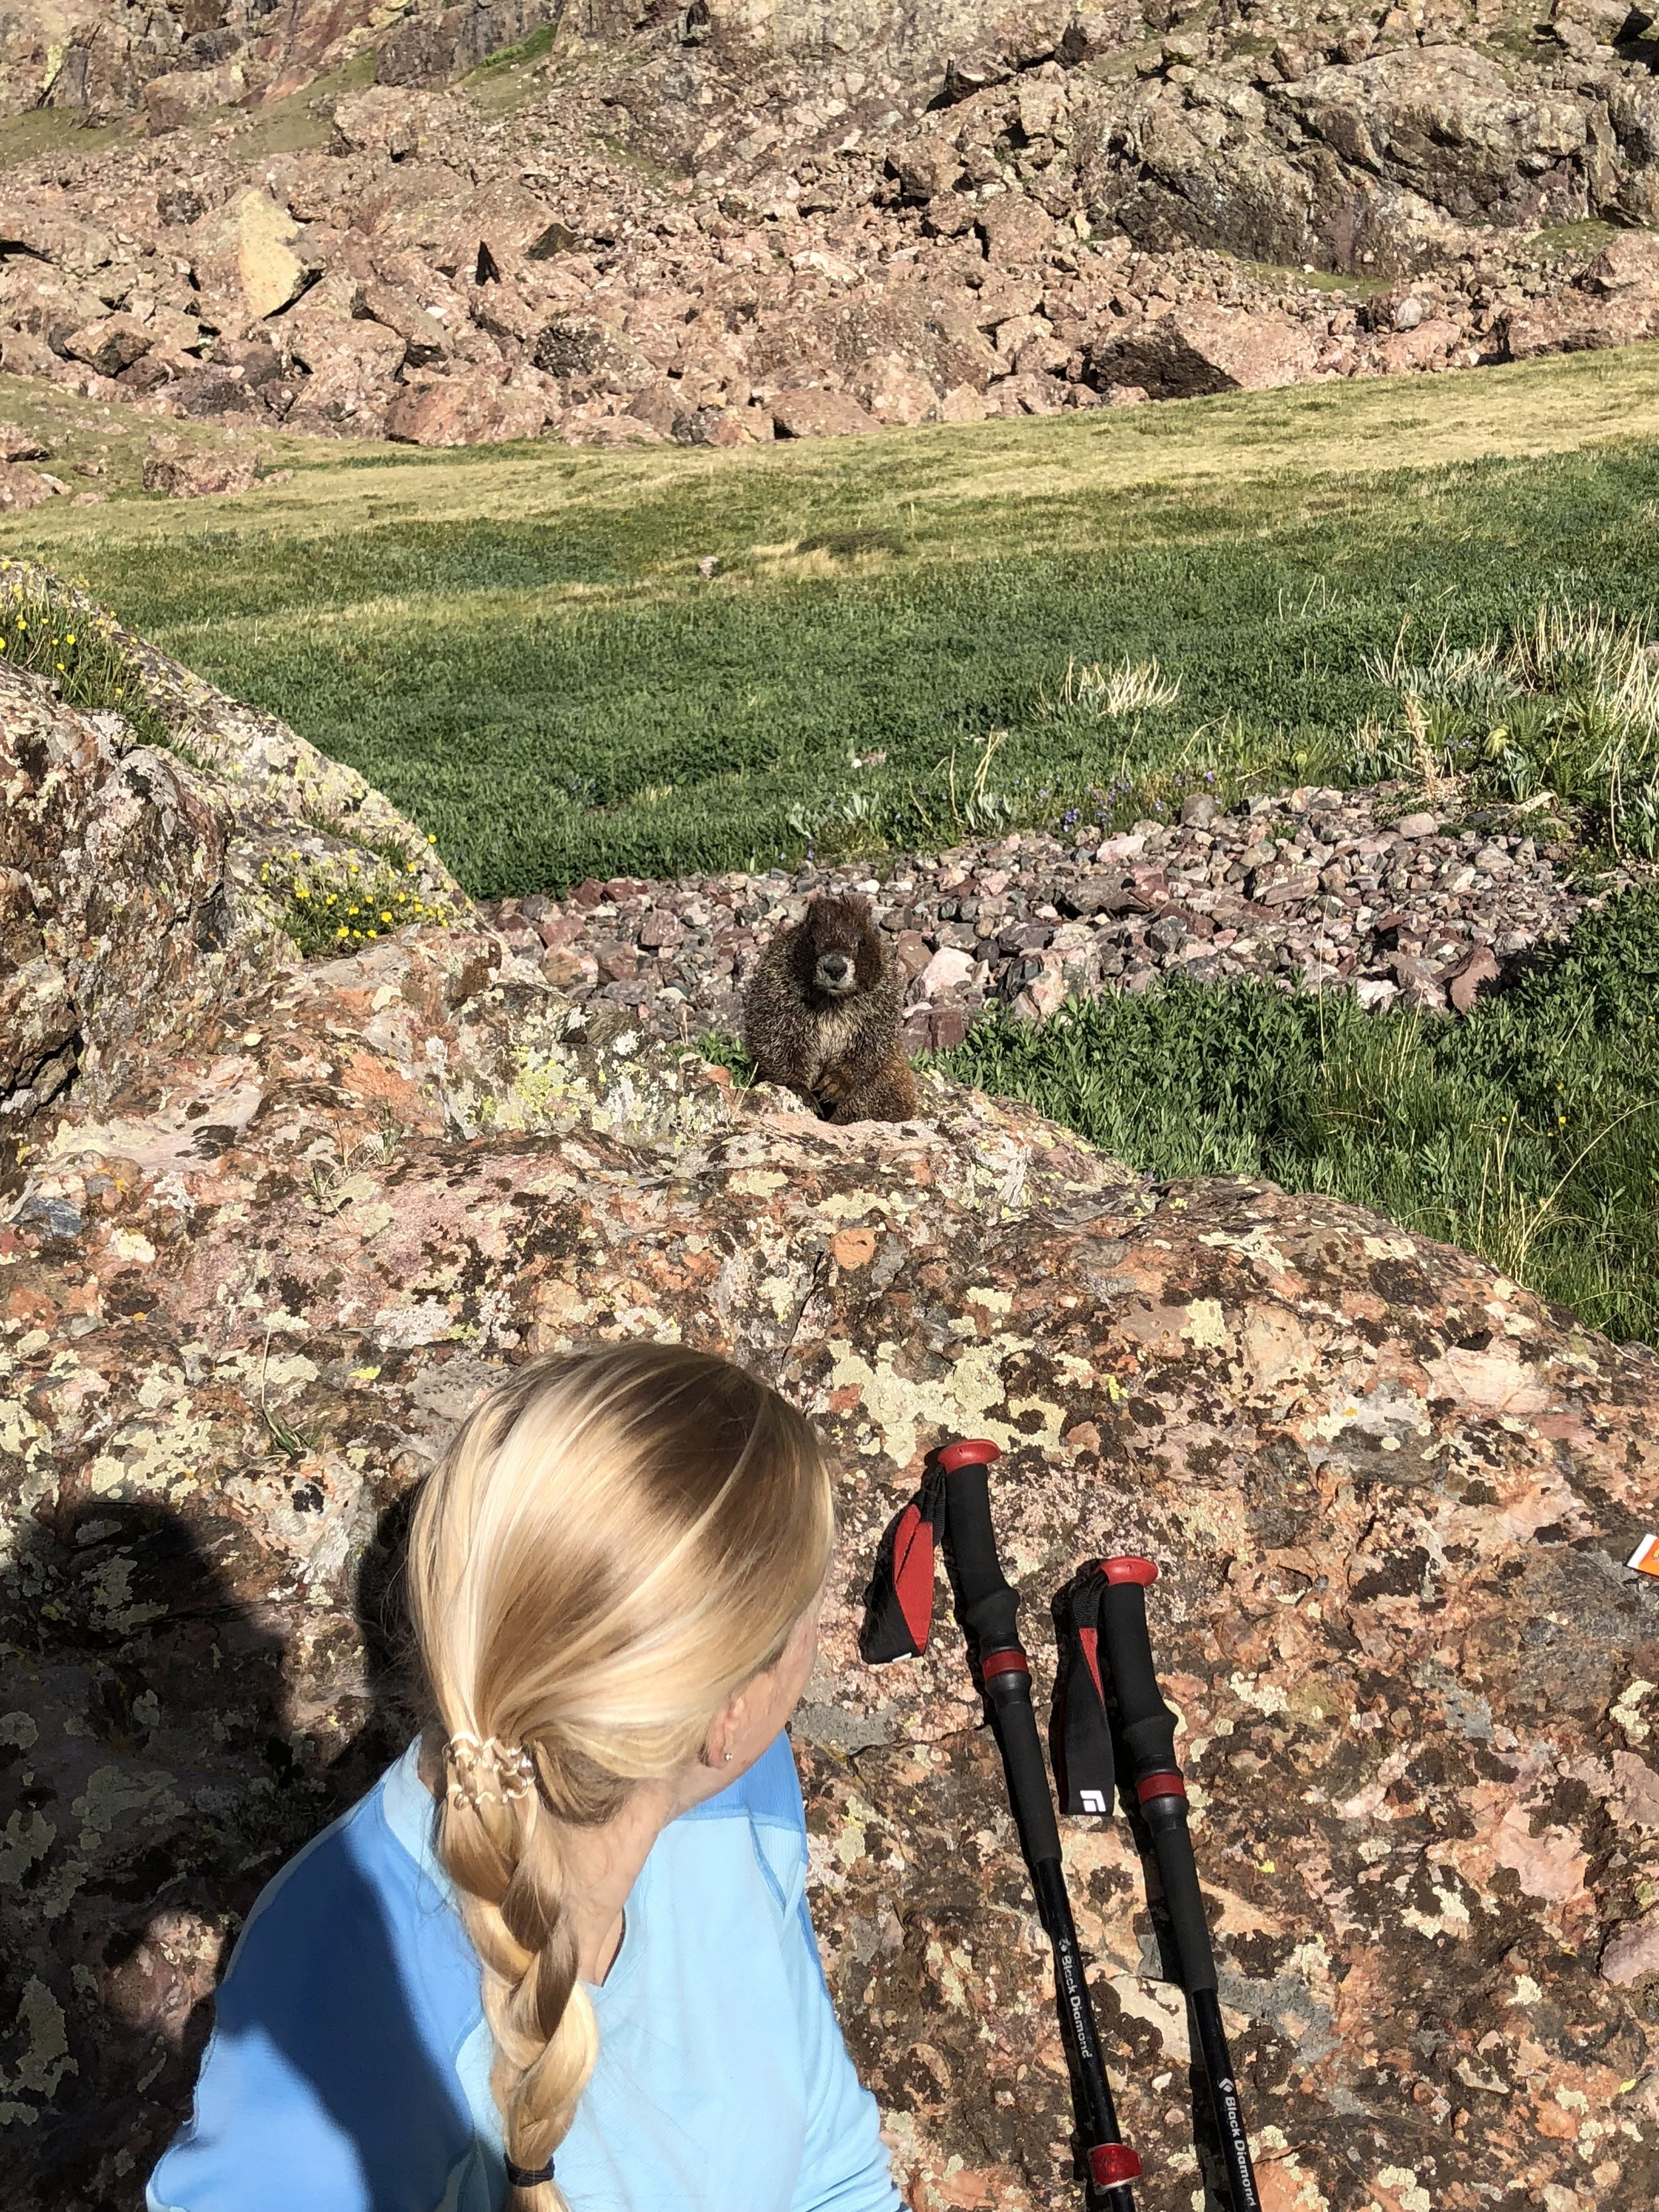 The marmots by Cottonwood lake are EXTRA friendly